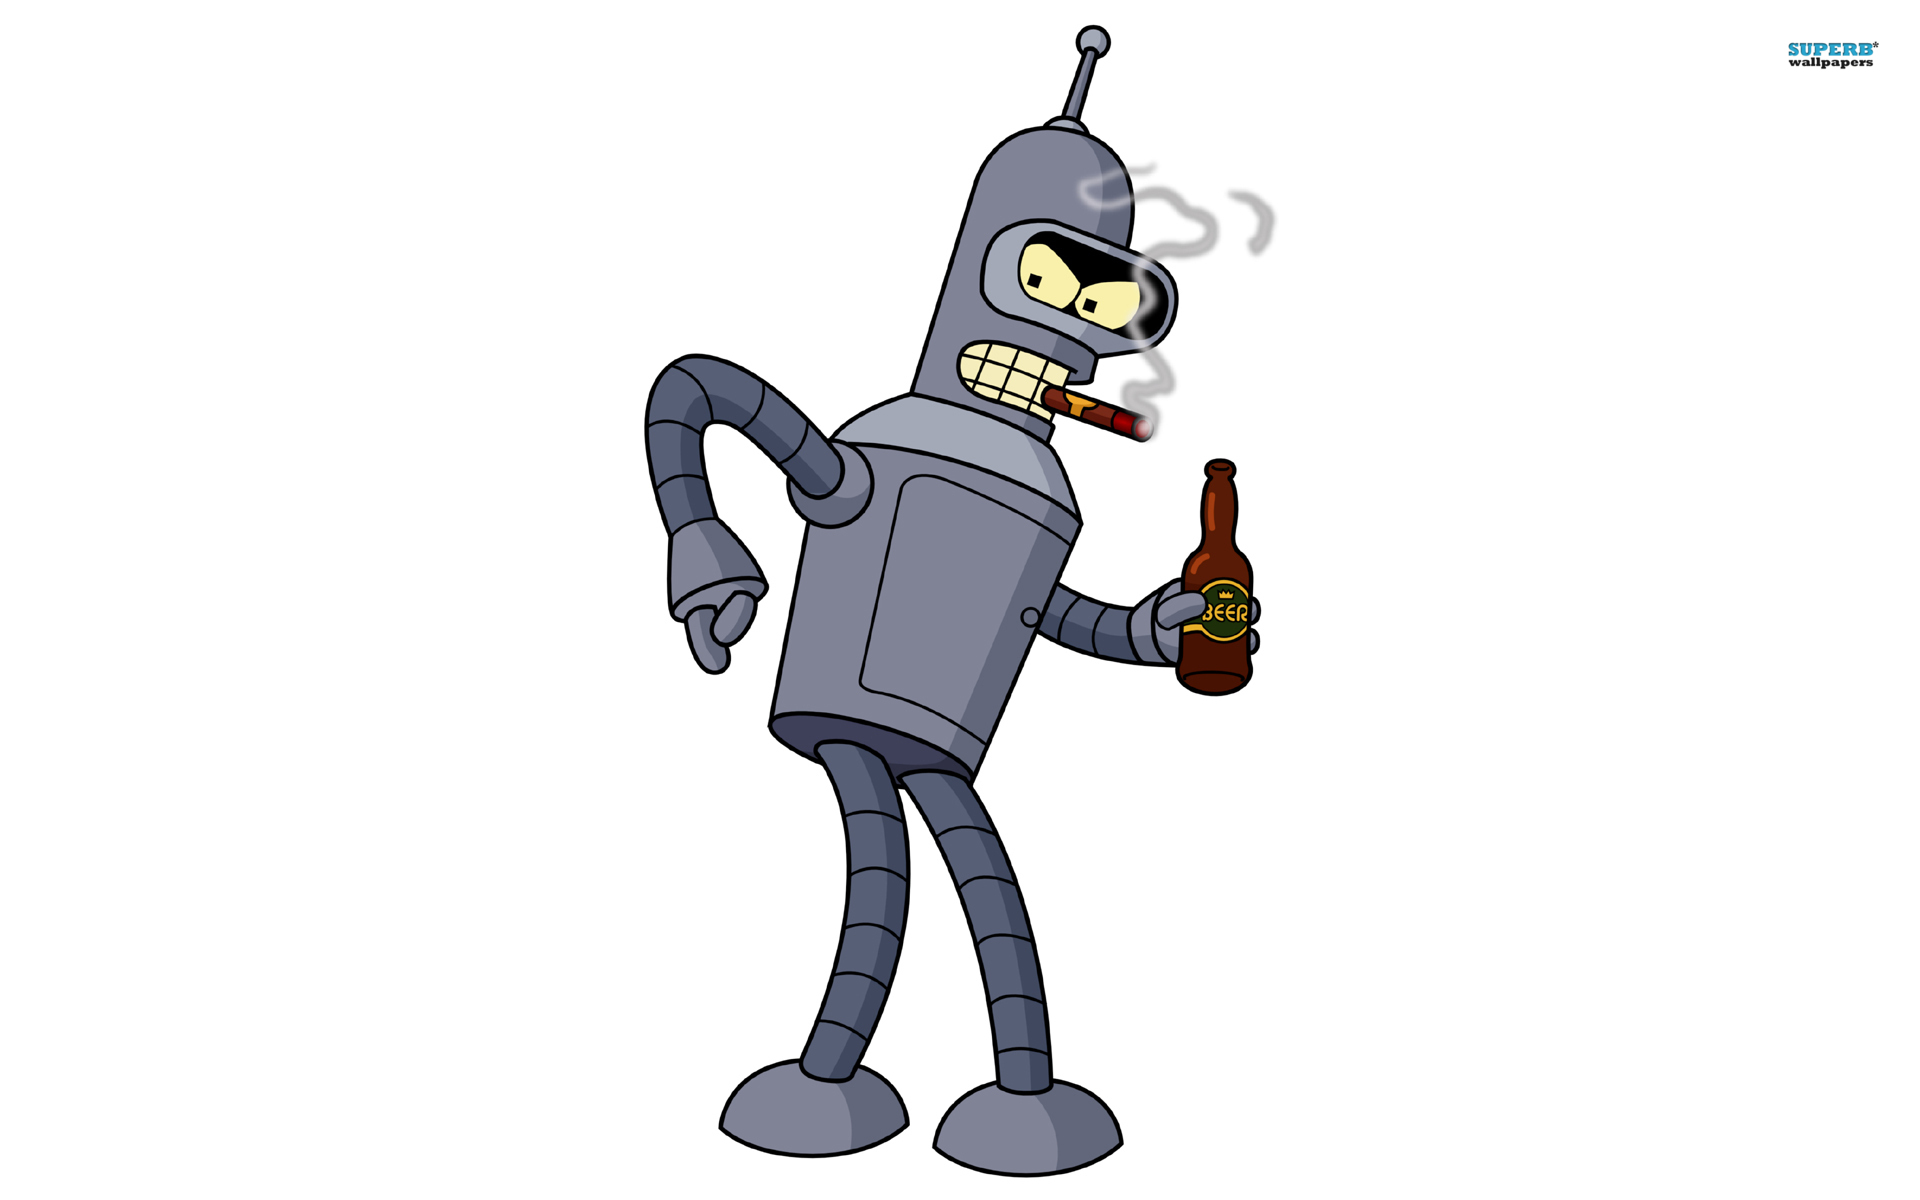 Bender - Futurama wallpaper 1920x1200